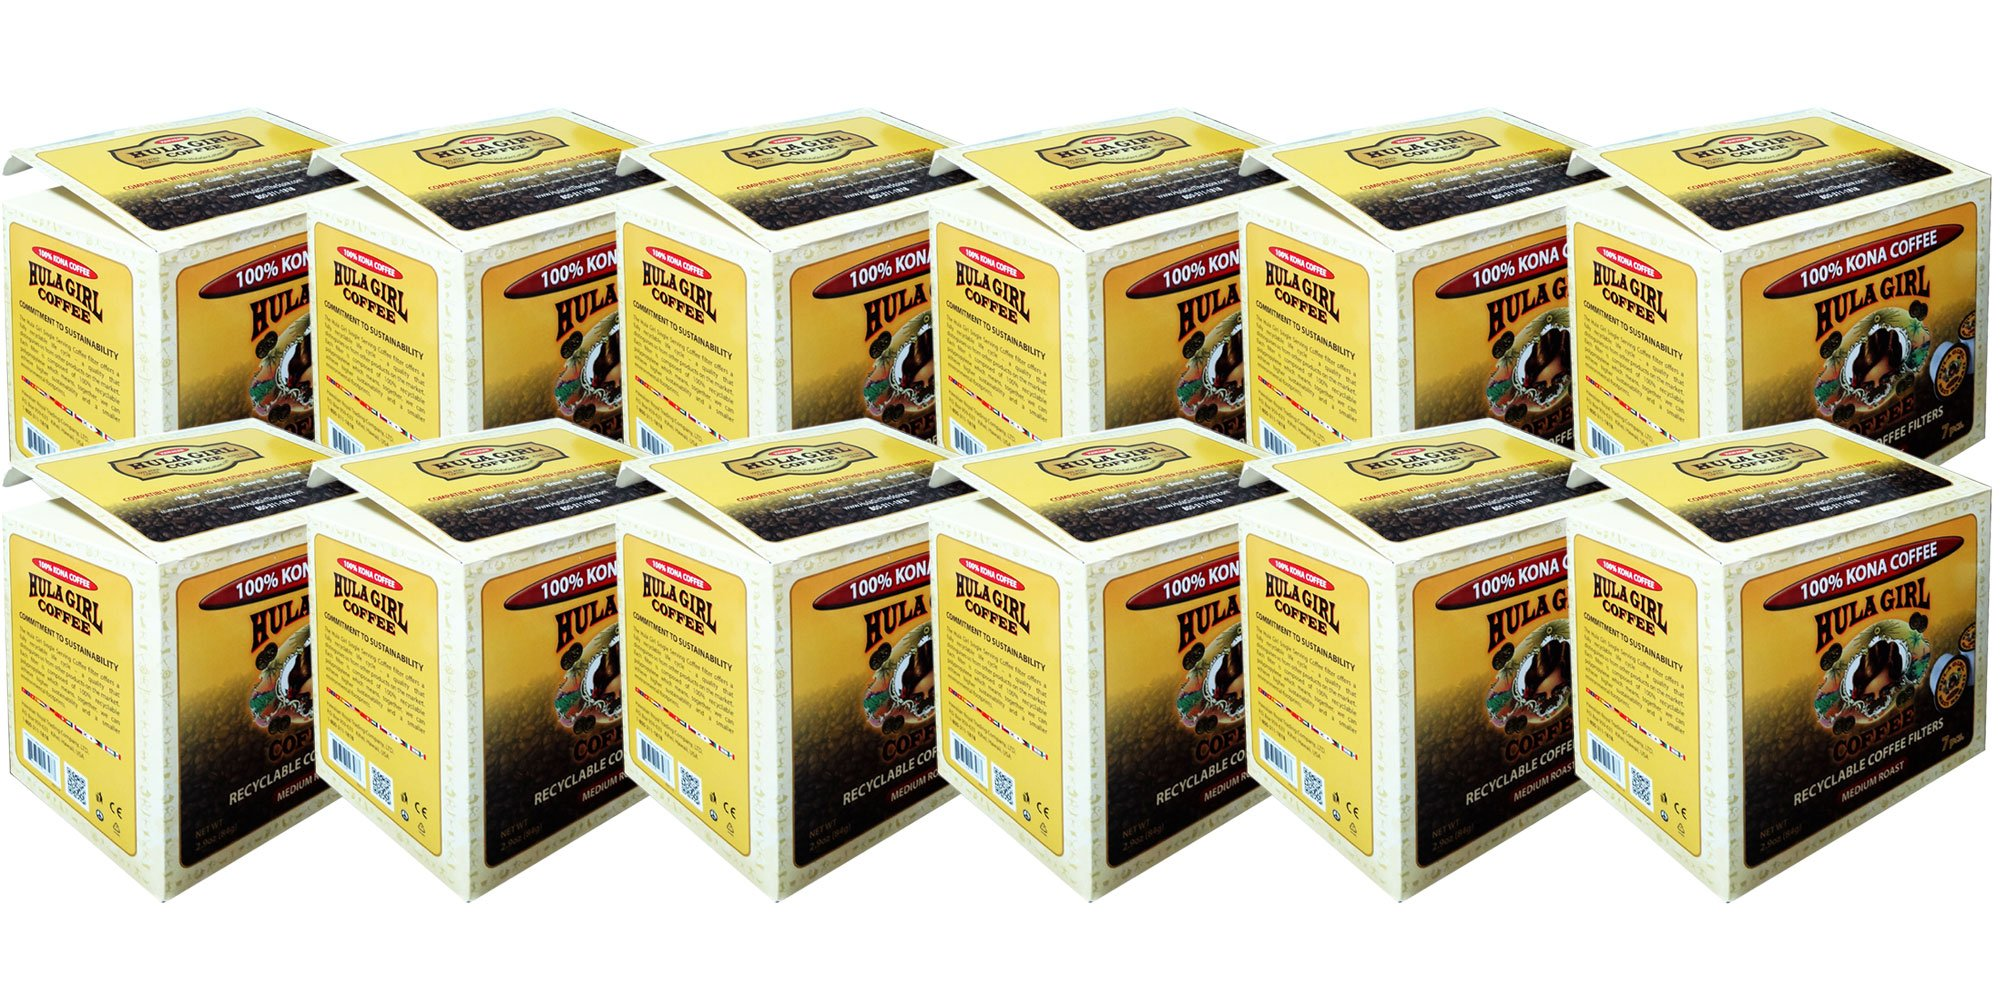 Hula Girl 100% Kona Coffee Single Serving - K-Cup Recyclable Filter (Pack of 12)